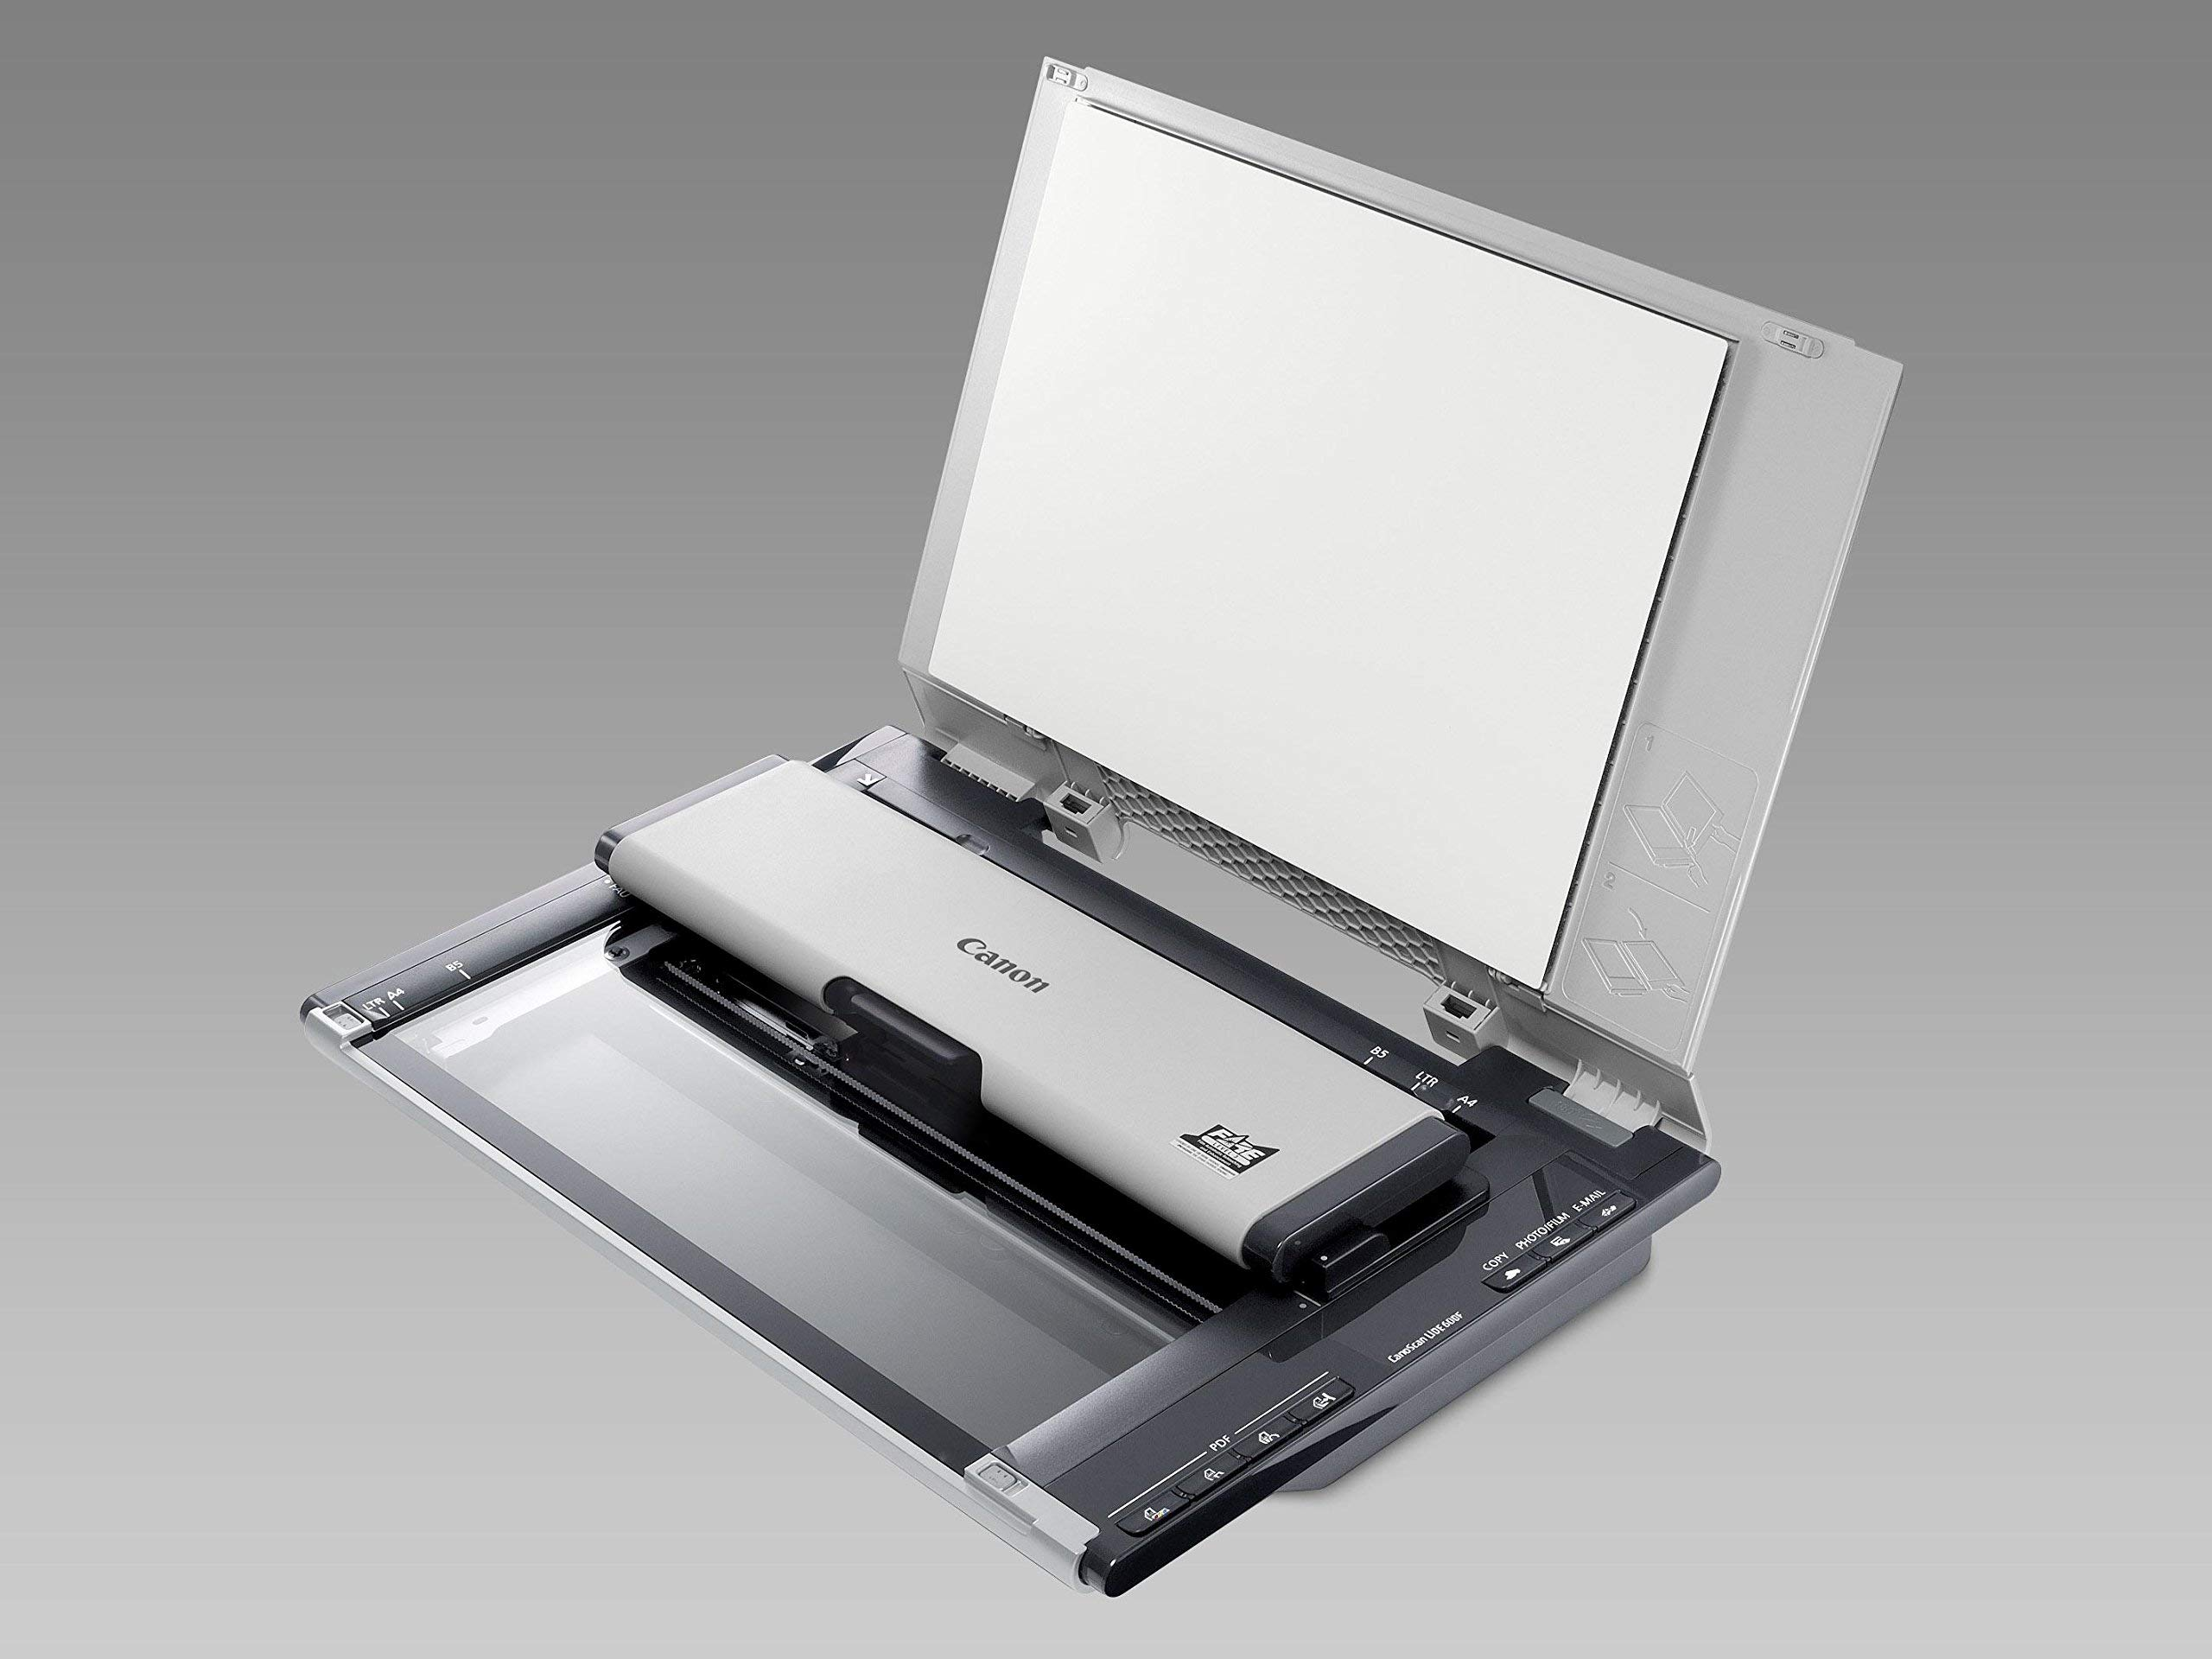 Canon CanoScan LiDE 600F scanner (0302B002) (Renewed) by Canon